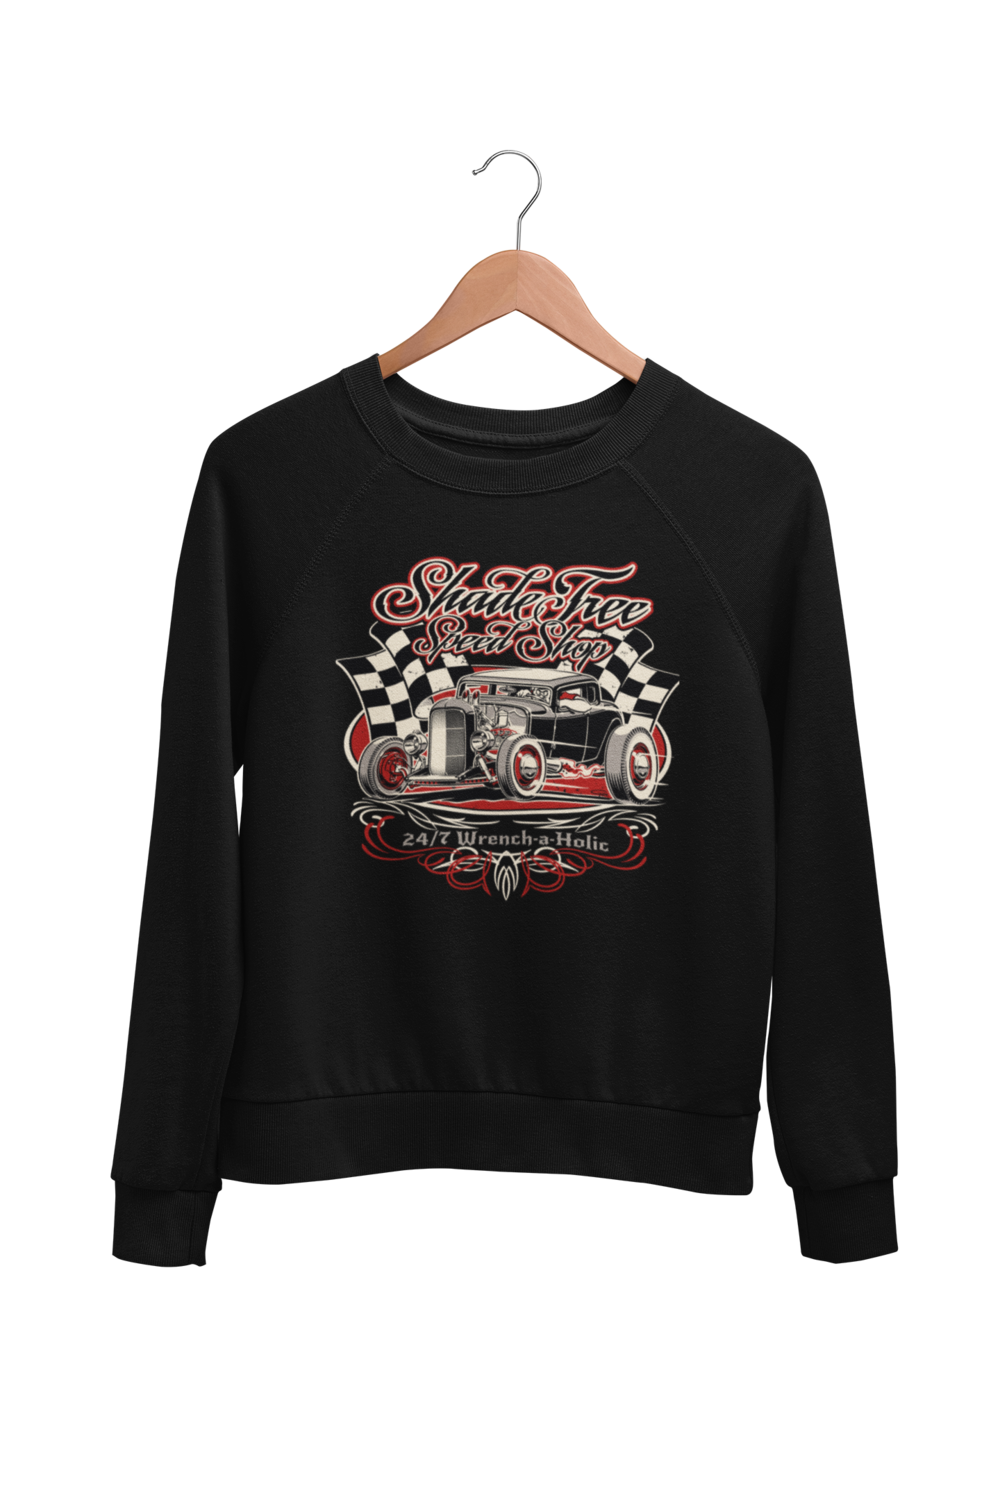 "SHADE TREE SPEED SHOP ""Deuce"" SWEATSHIRT UNISEX by BY Ger ""Dutch Courage"" Peters artwork"